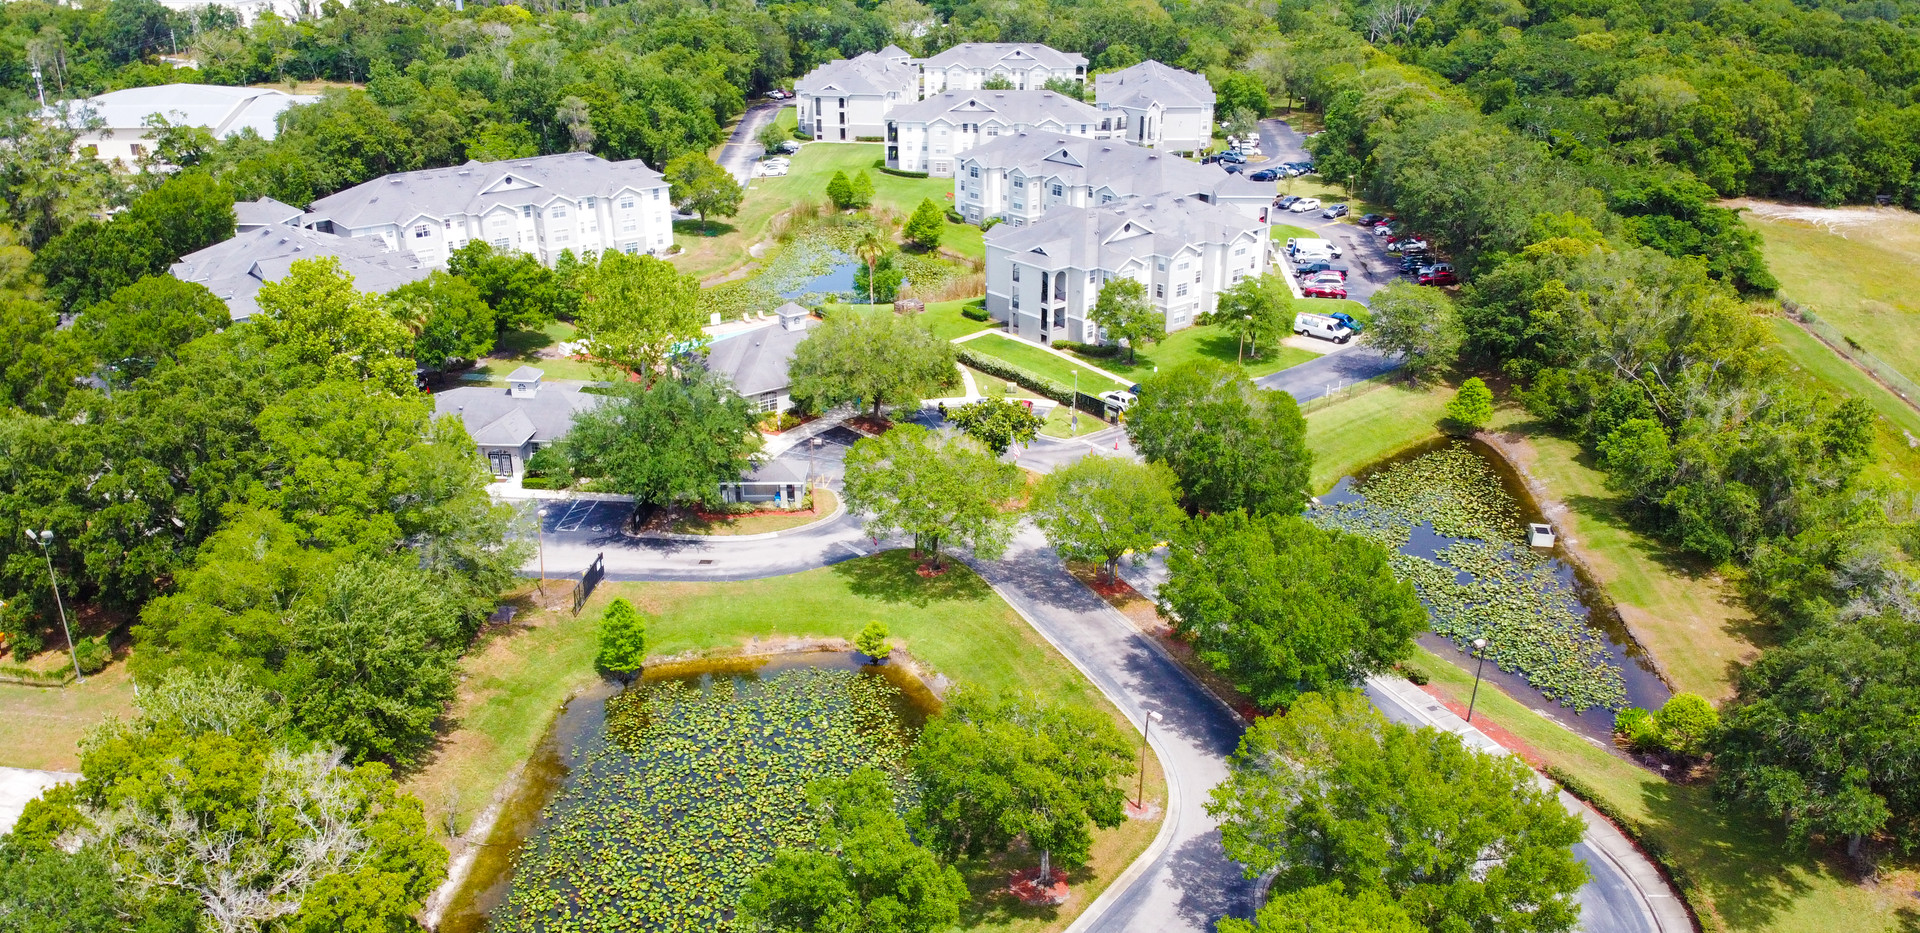 Aerial photograph of apartment complex